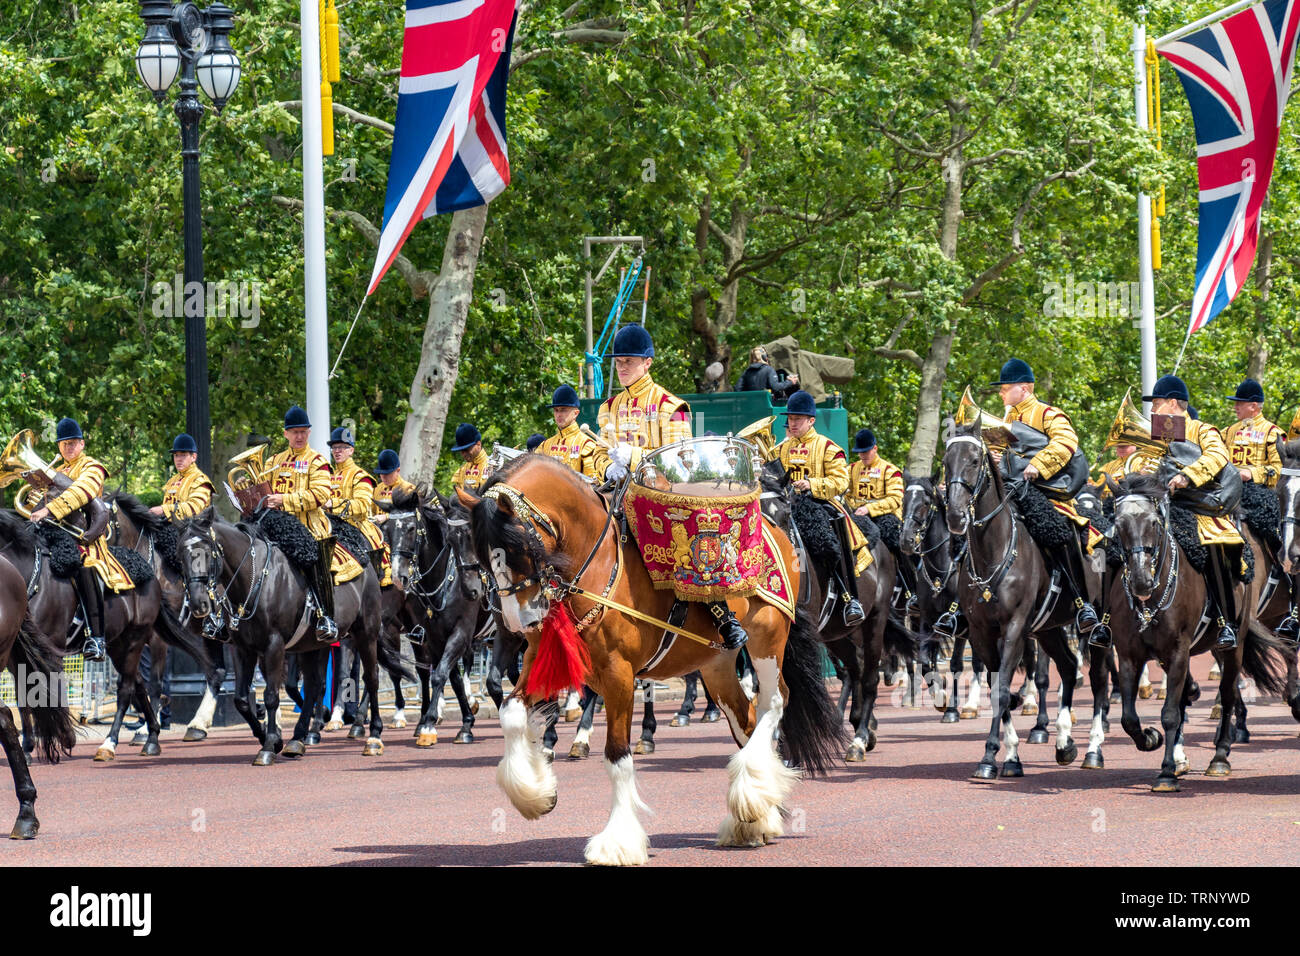 Mounted Band of The Household Cavalry on The Mall at The Trooping Of The Colour Ceremony ,London 2019 - Stock Image